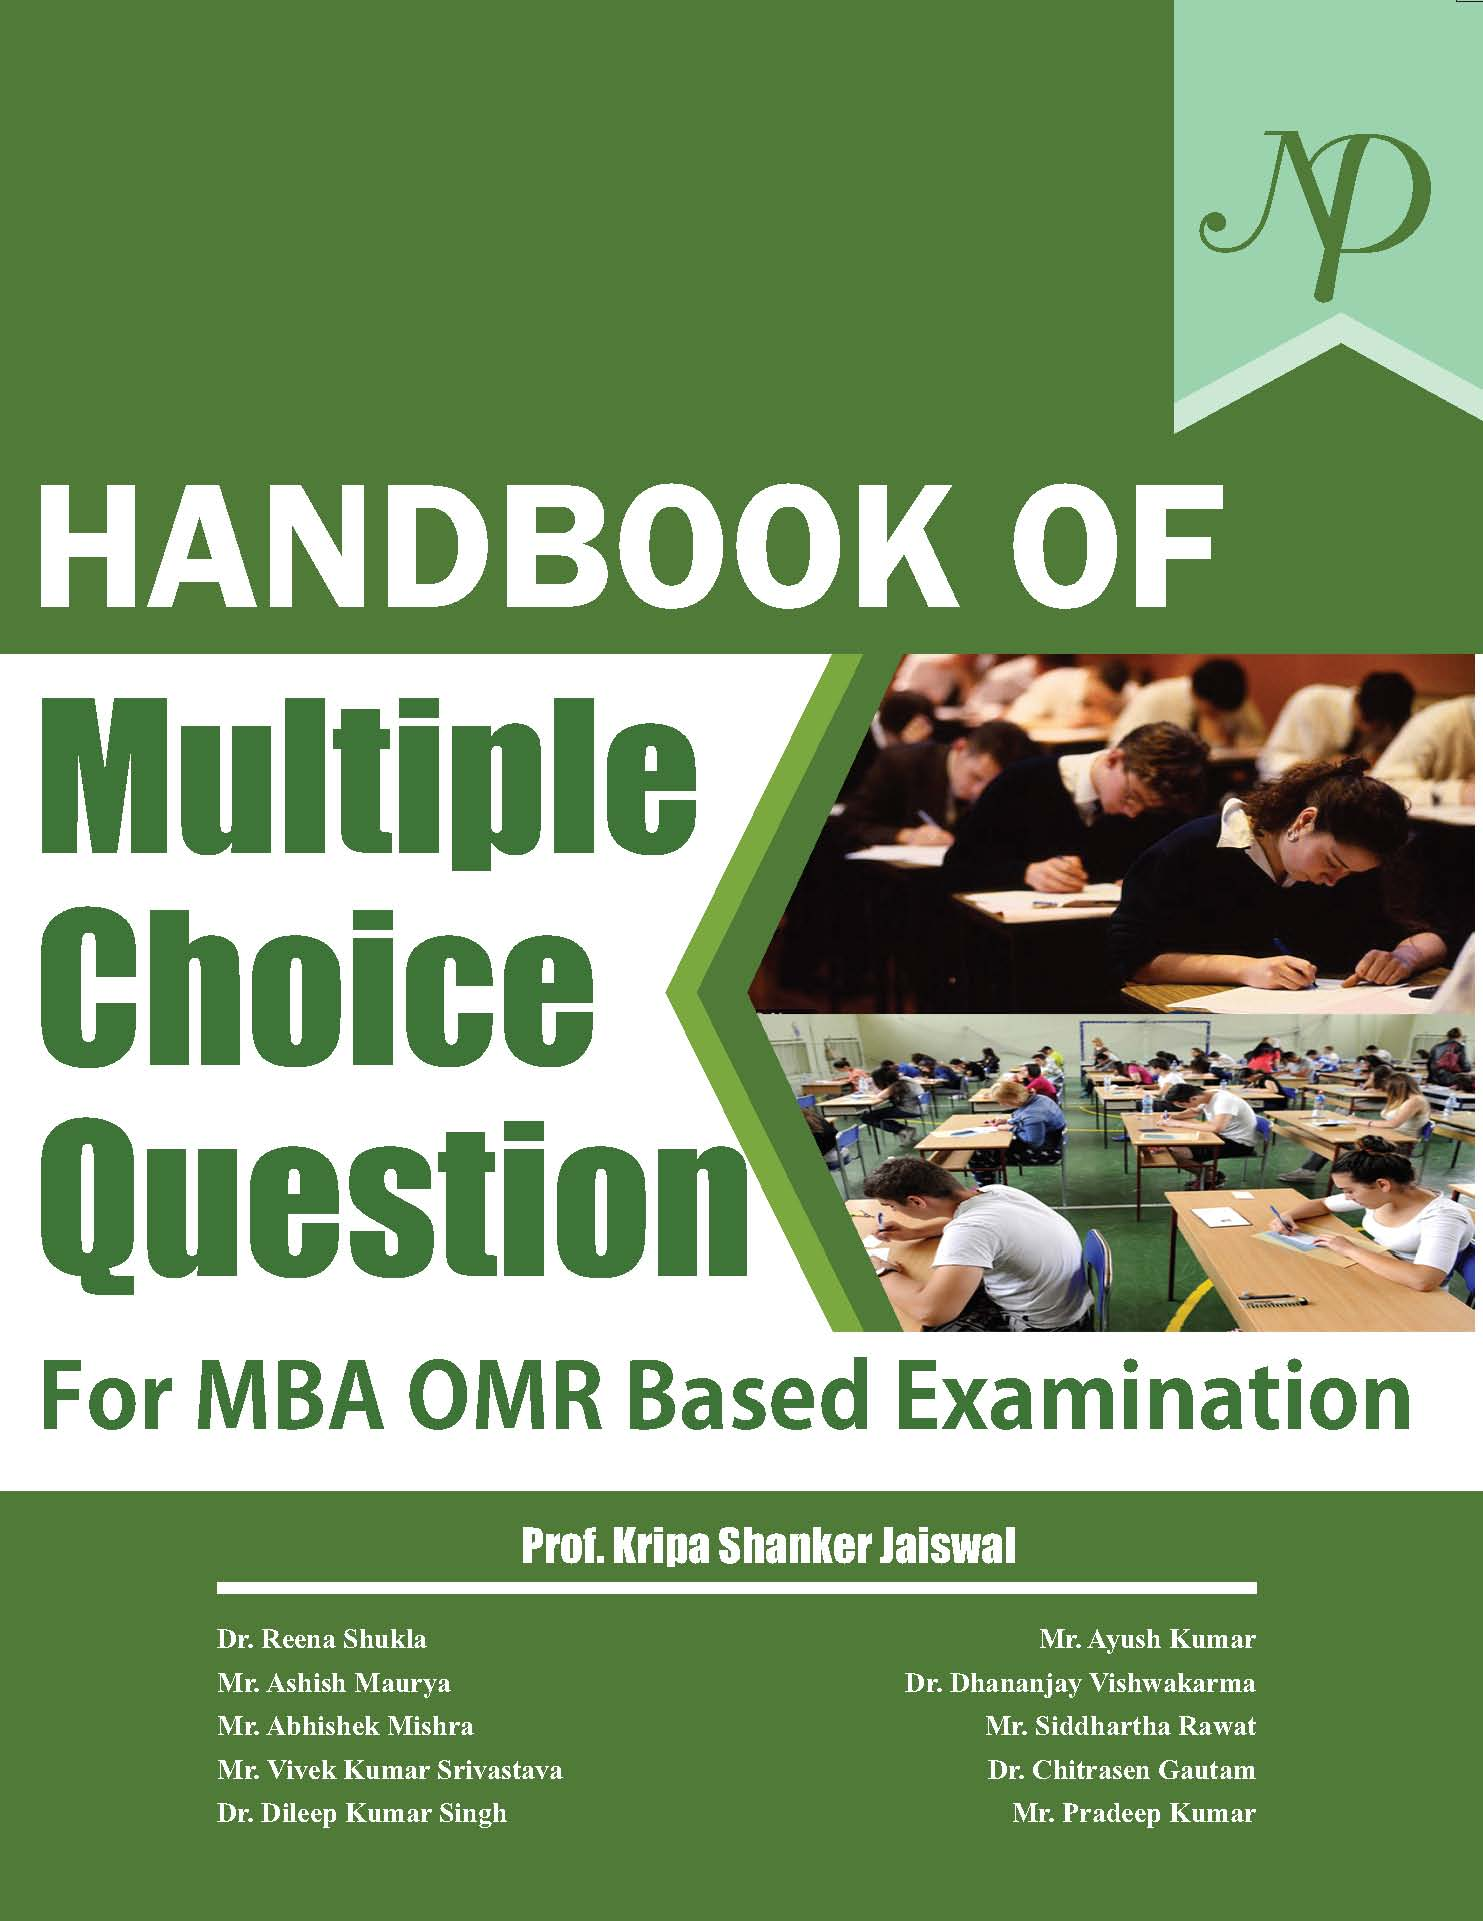 Handbook of Multiple Choice Question for MBA OMR Based Examination